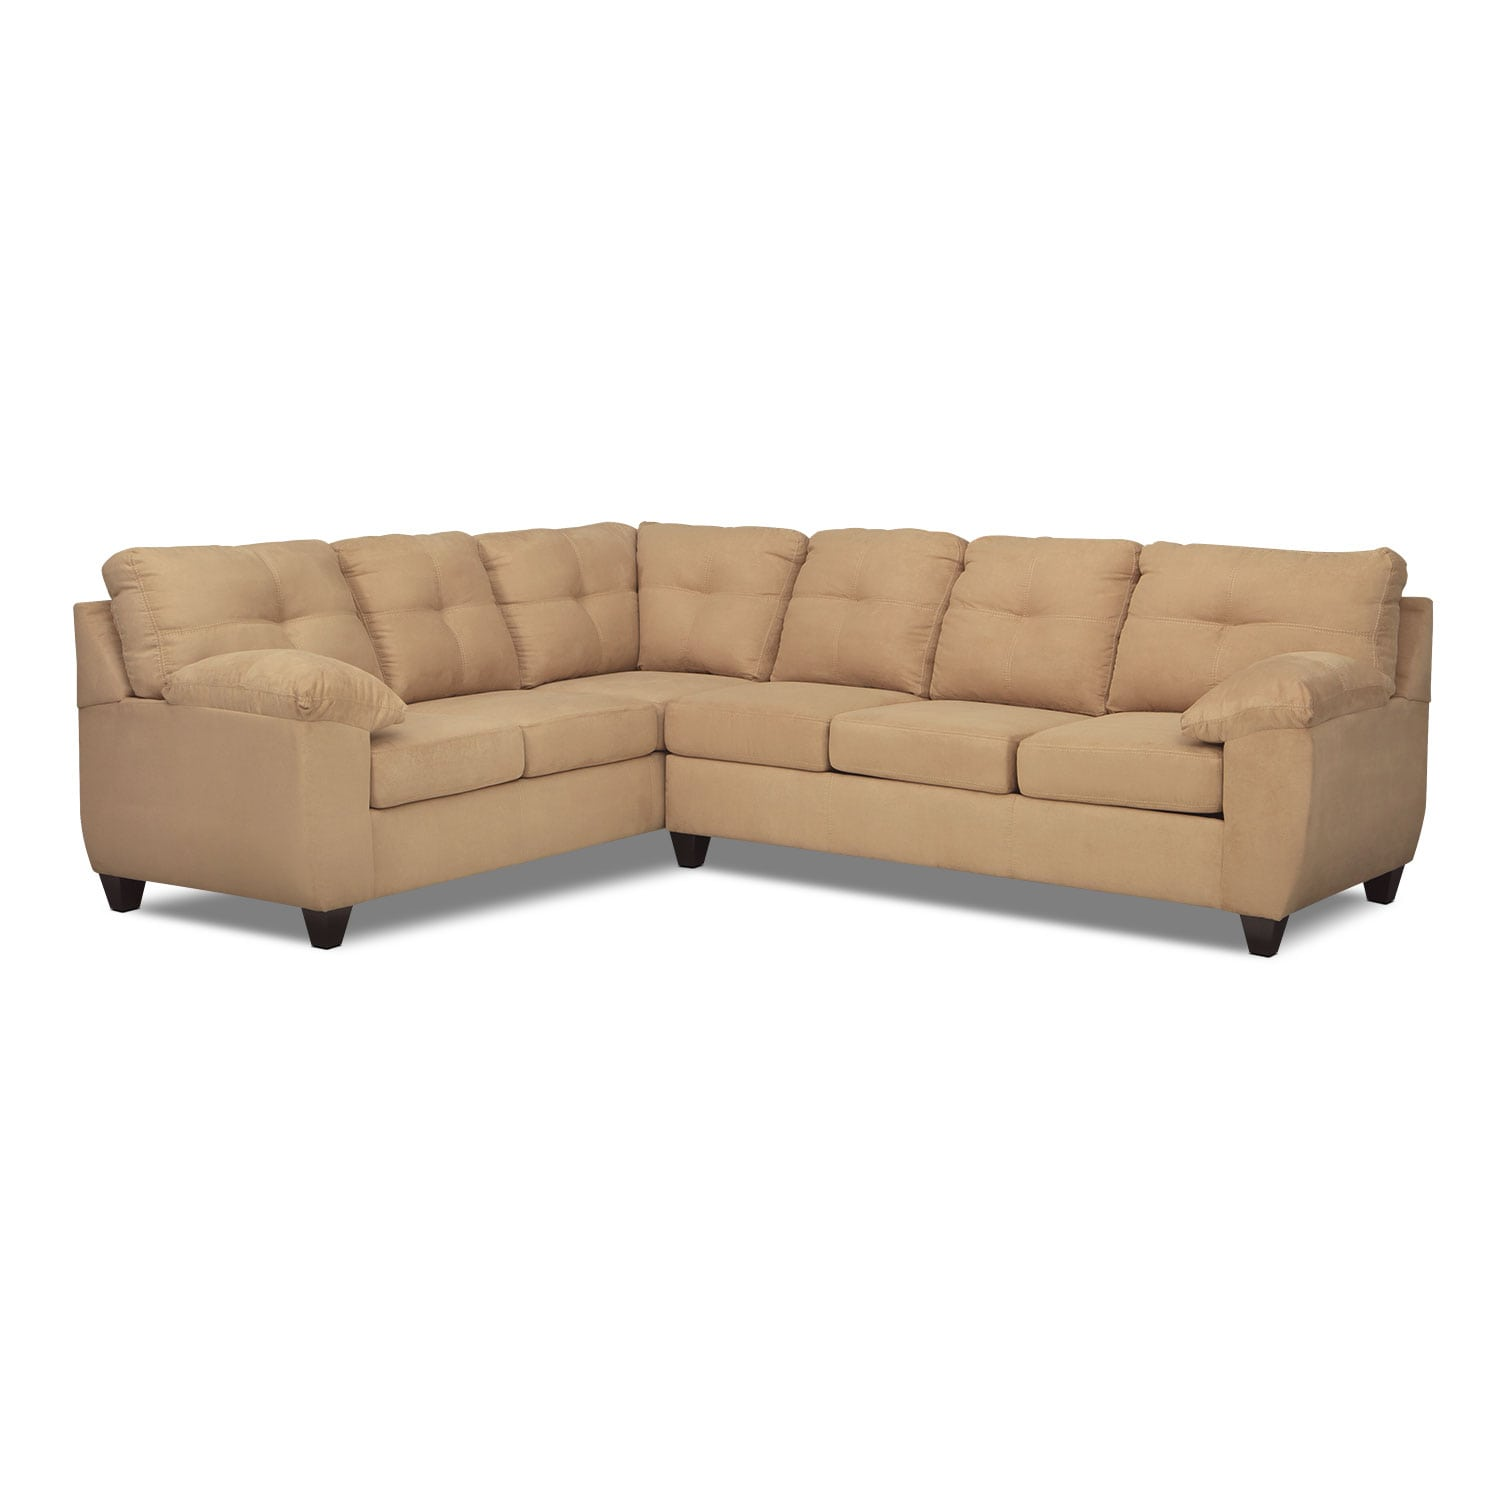 Ricardo 2 Piece Memory Foam Sleeper Sectional With Left